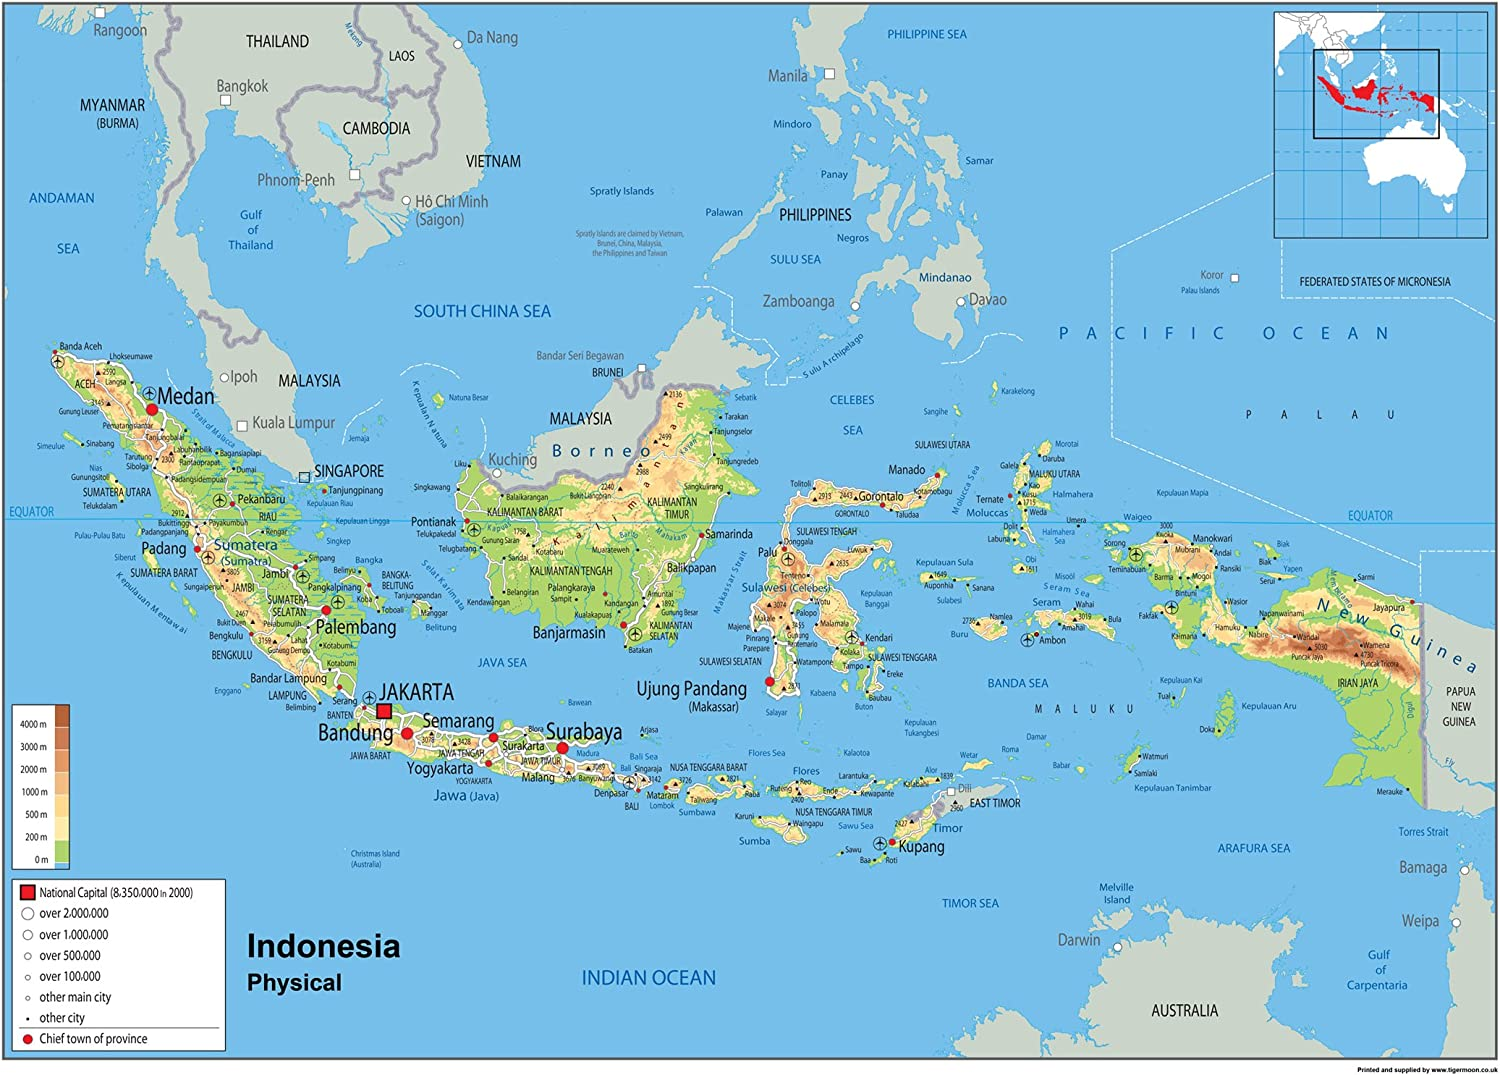 Cartina Bali Indonesia.Indonesia Physical Map Paper Laminated A2 Size 42 X 59 4 Cm Amazon Co Uk Office Products